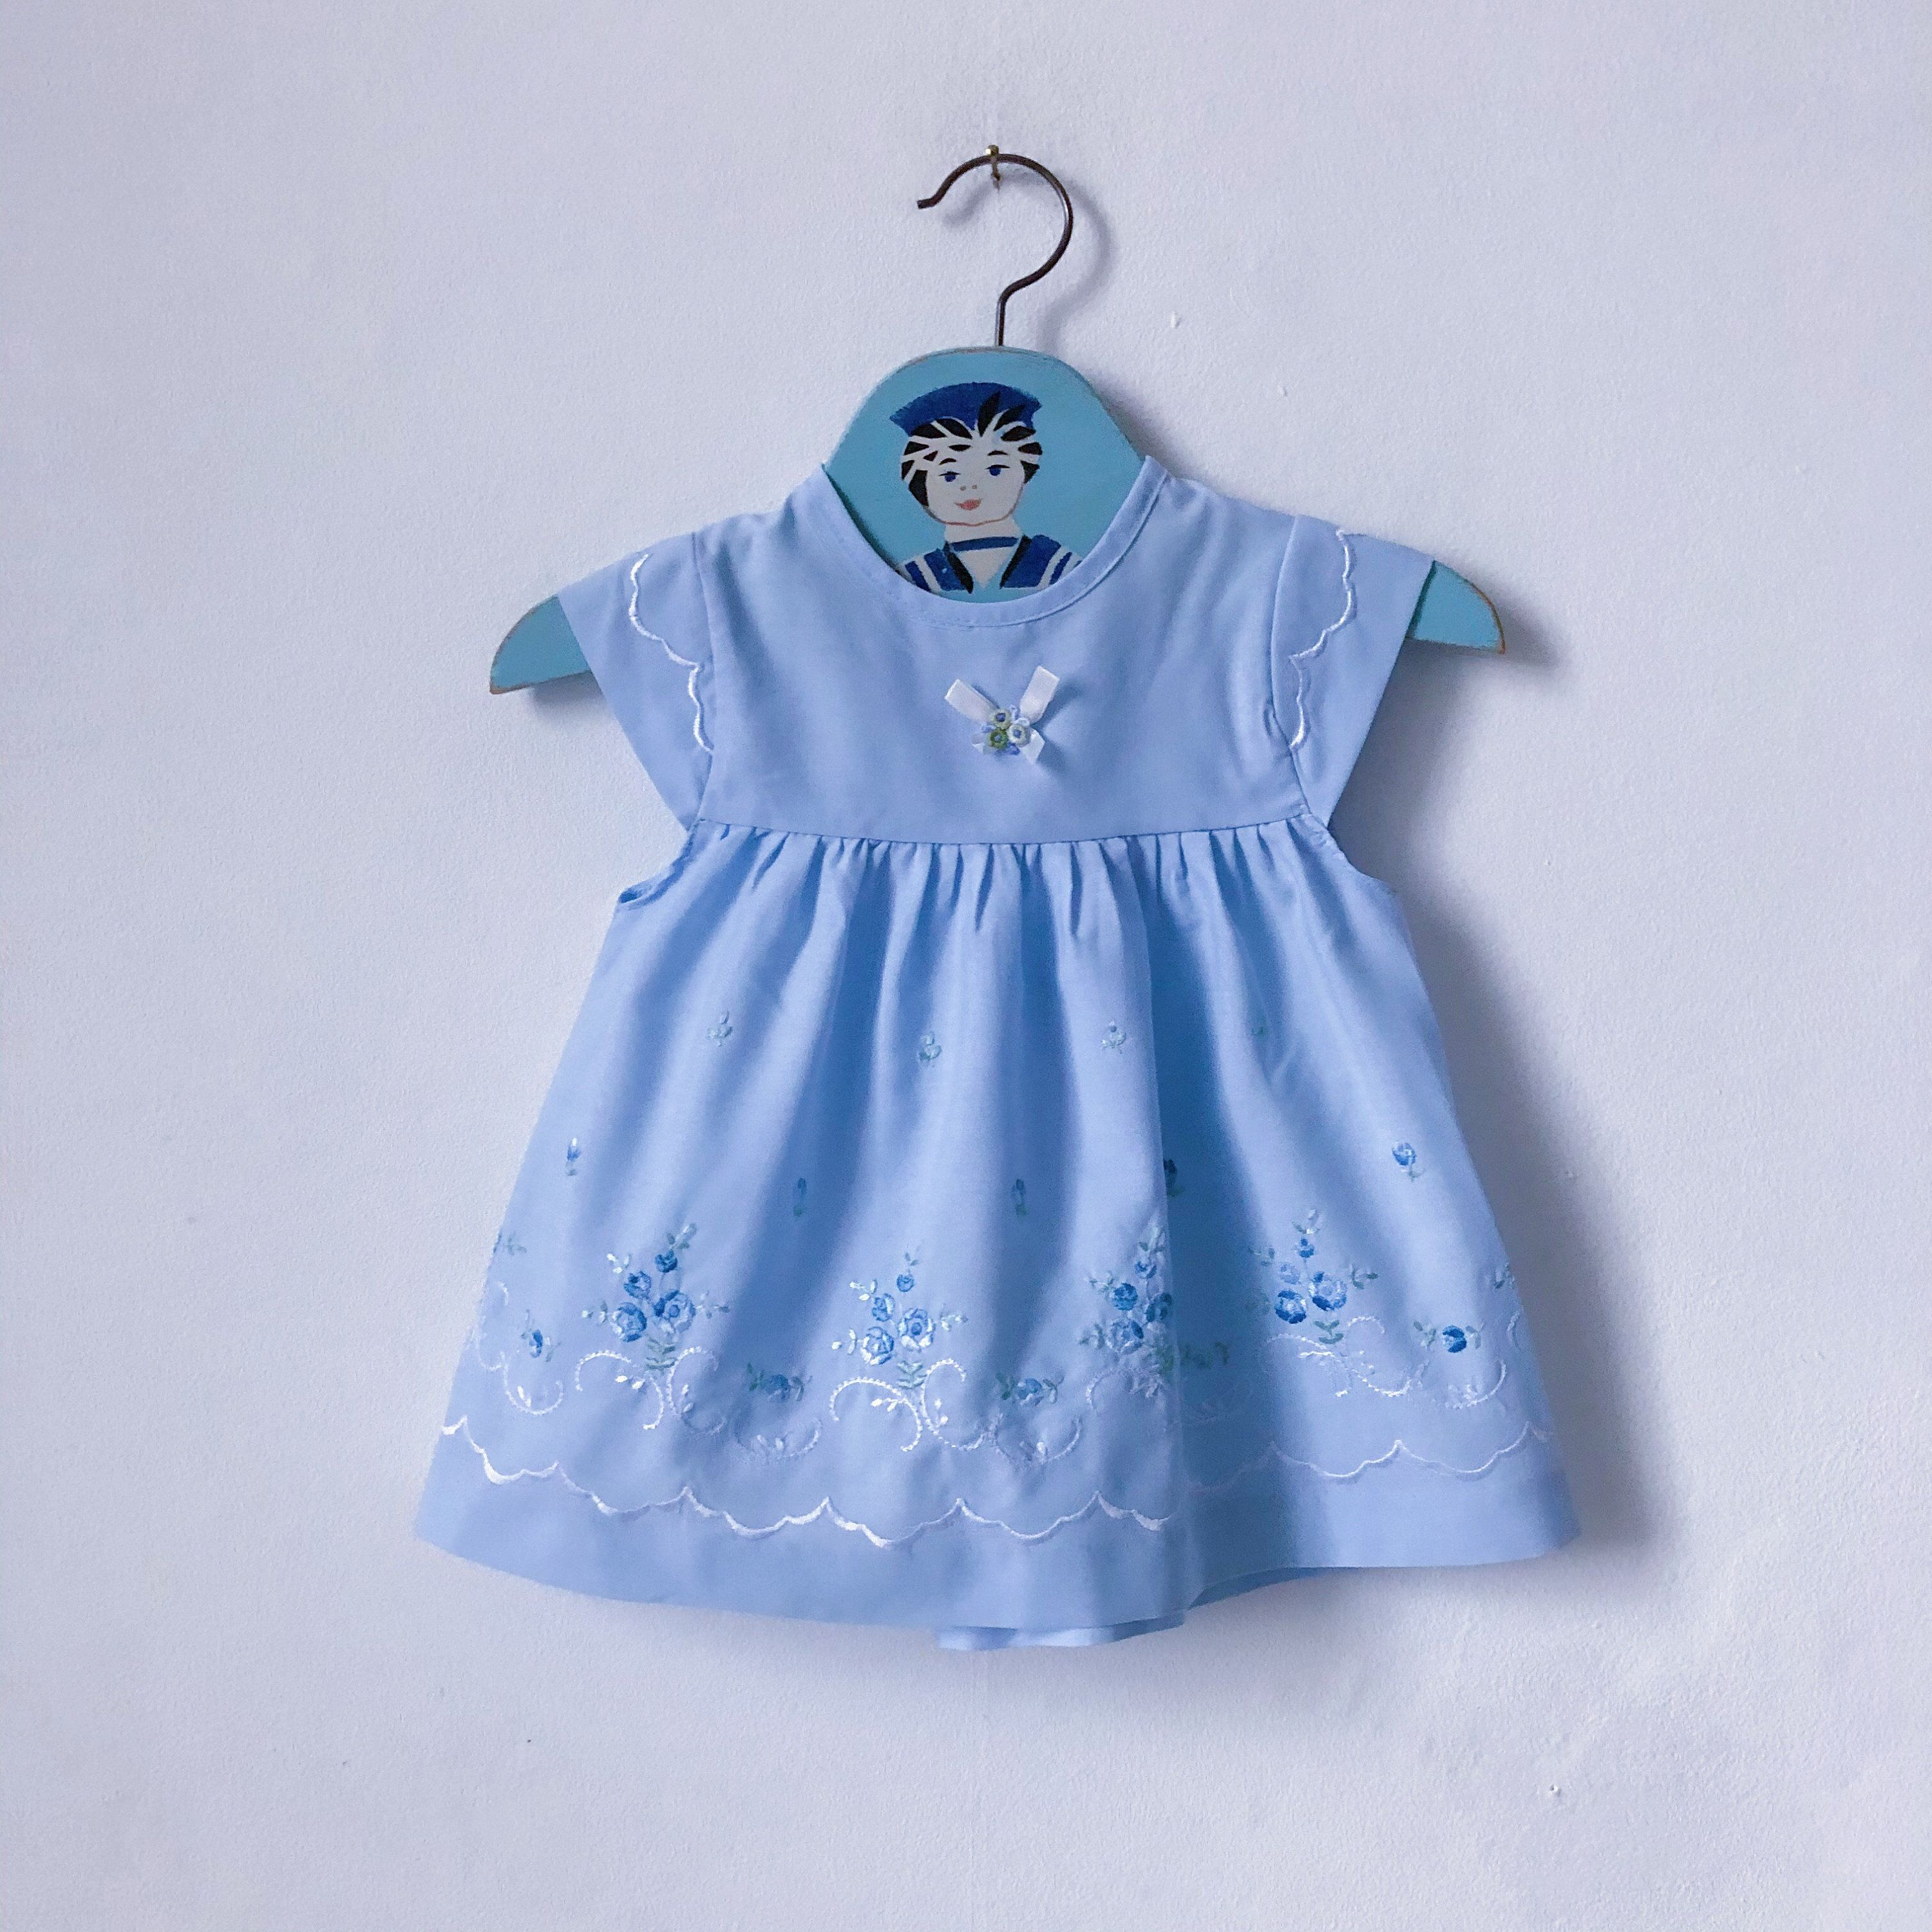 Vintage corduroy pinafore dress girls age 6-12 months from 1980s